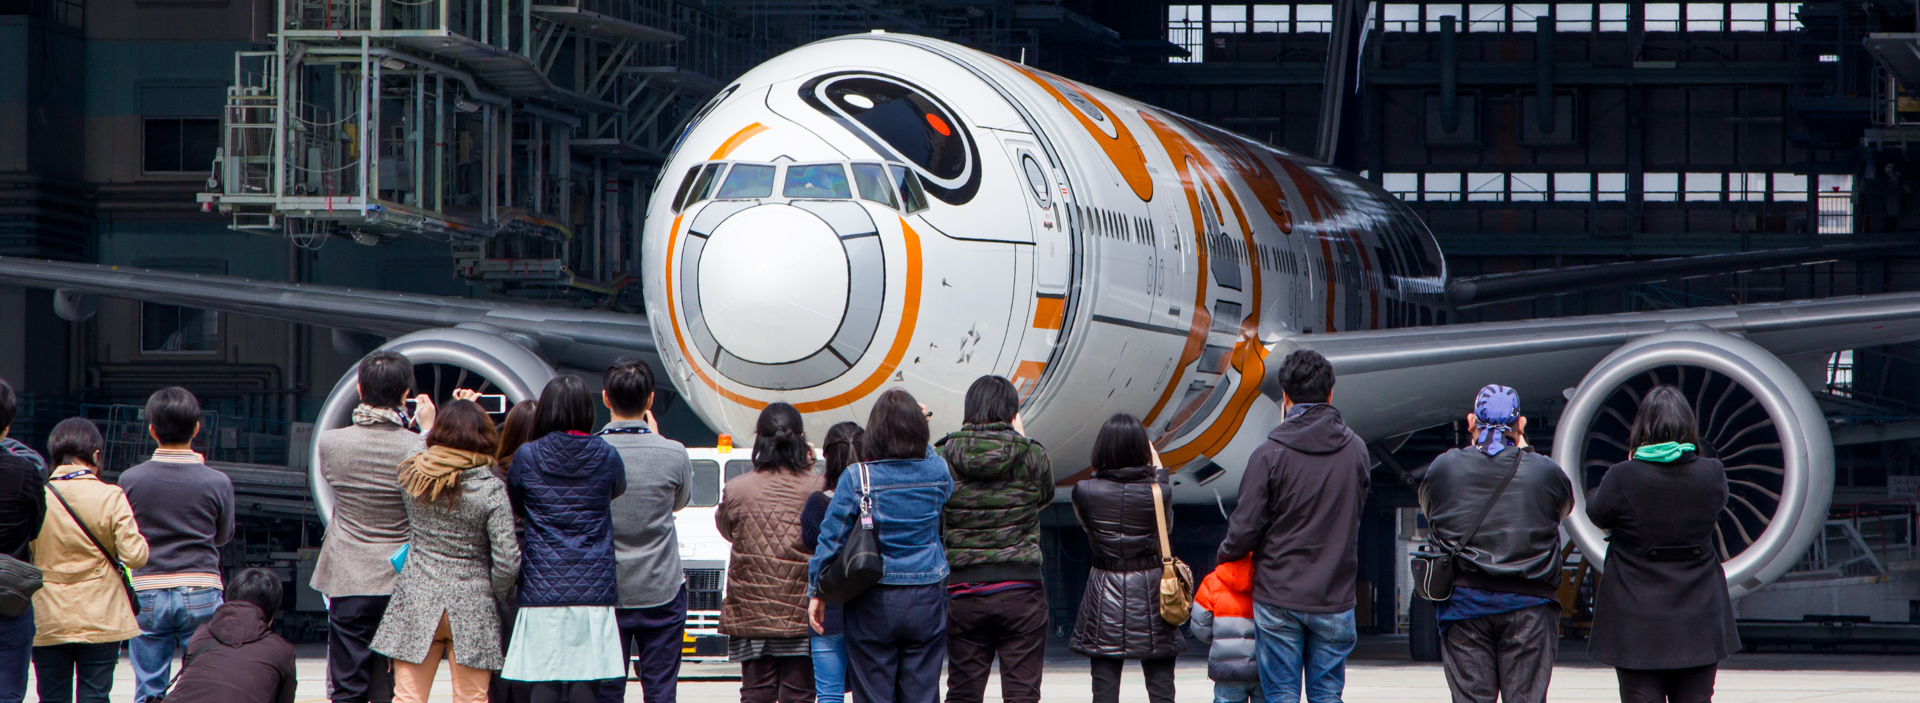 Star Wars BB-8™ ANA Jet Pt. 1: The Roll-Out